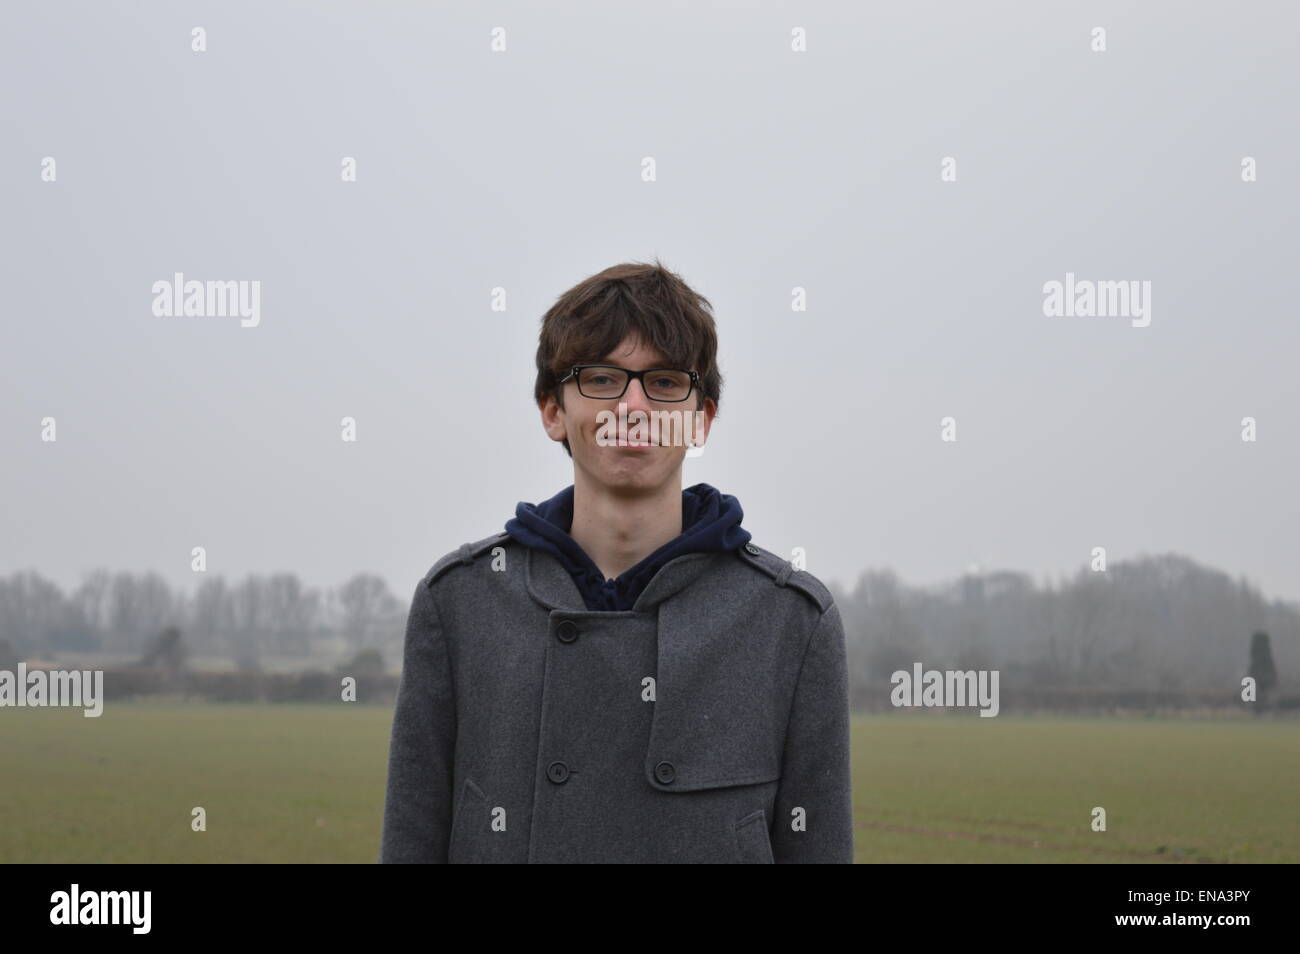 A skeptical model with a backdrop of a gray North Norfolk day - Stock Image